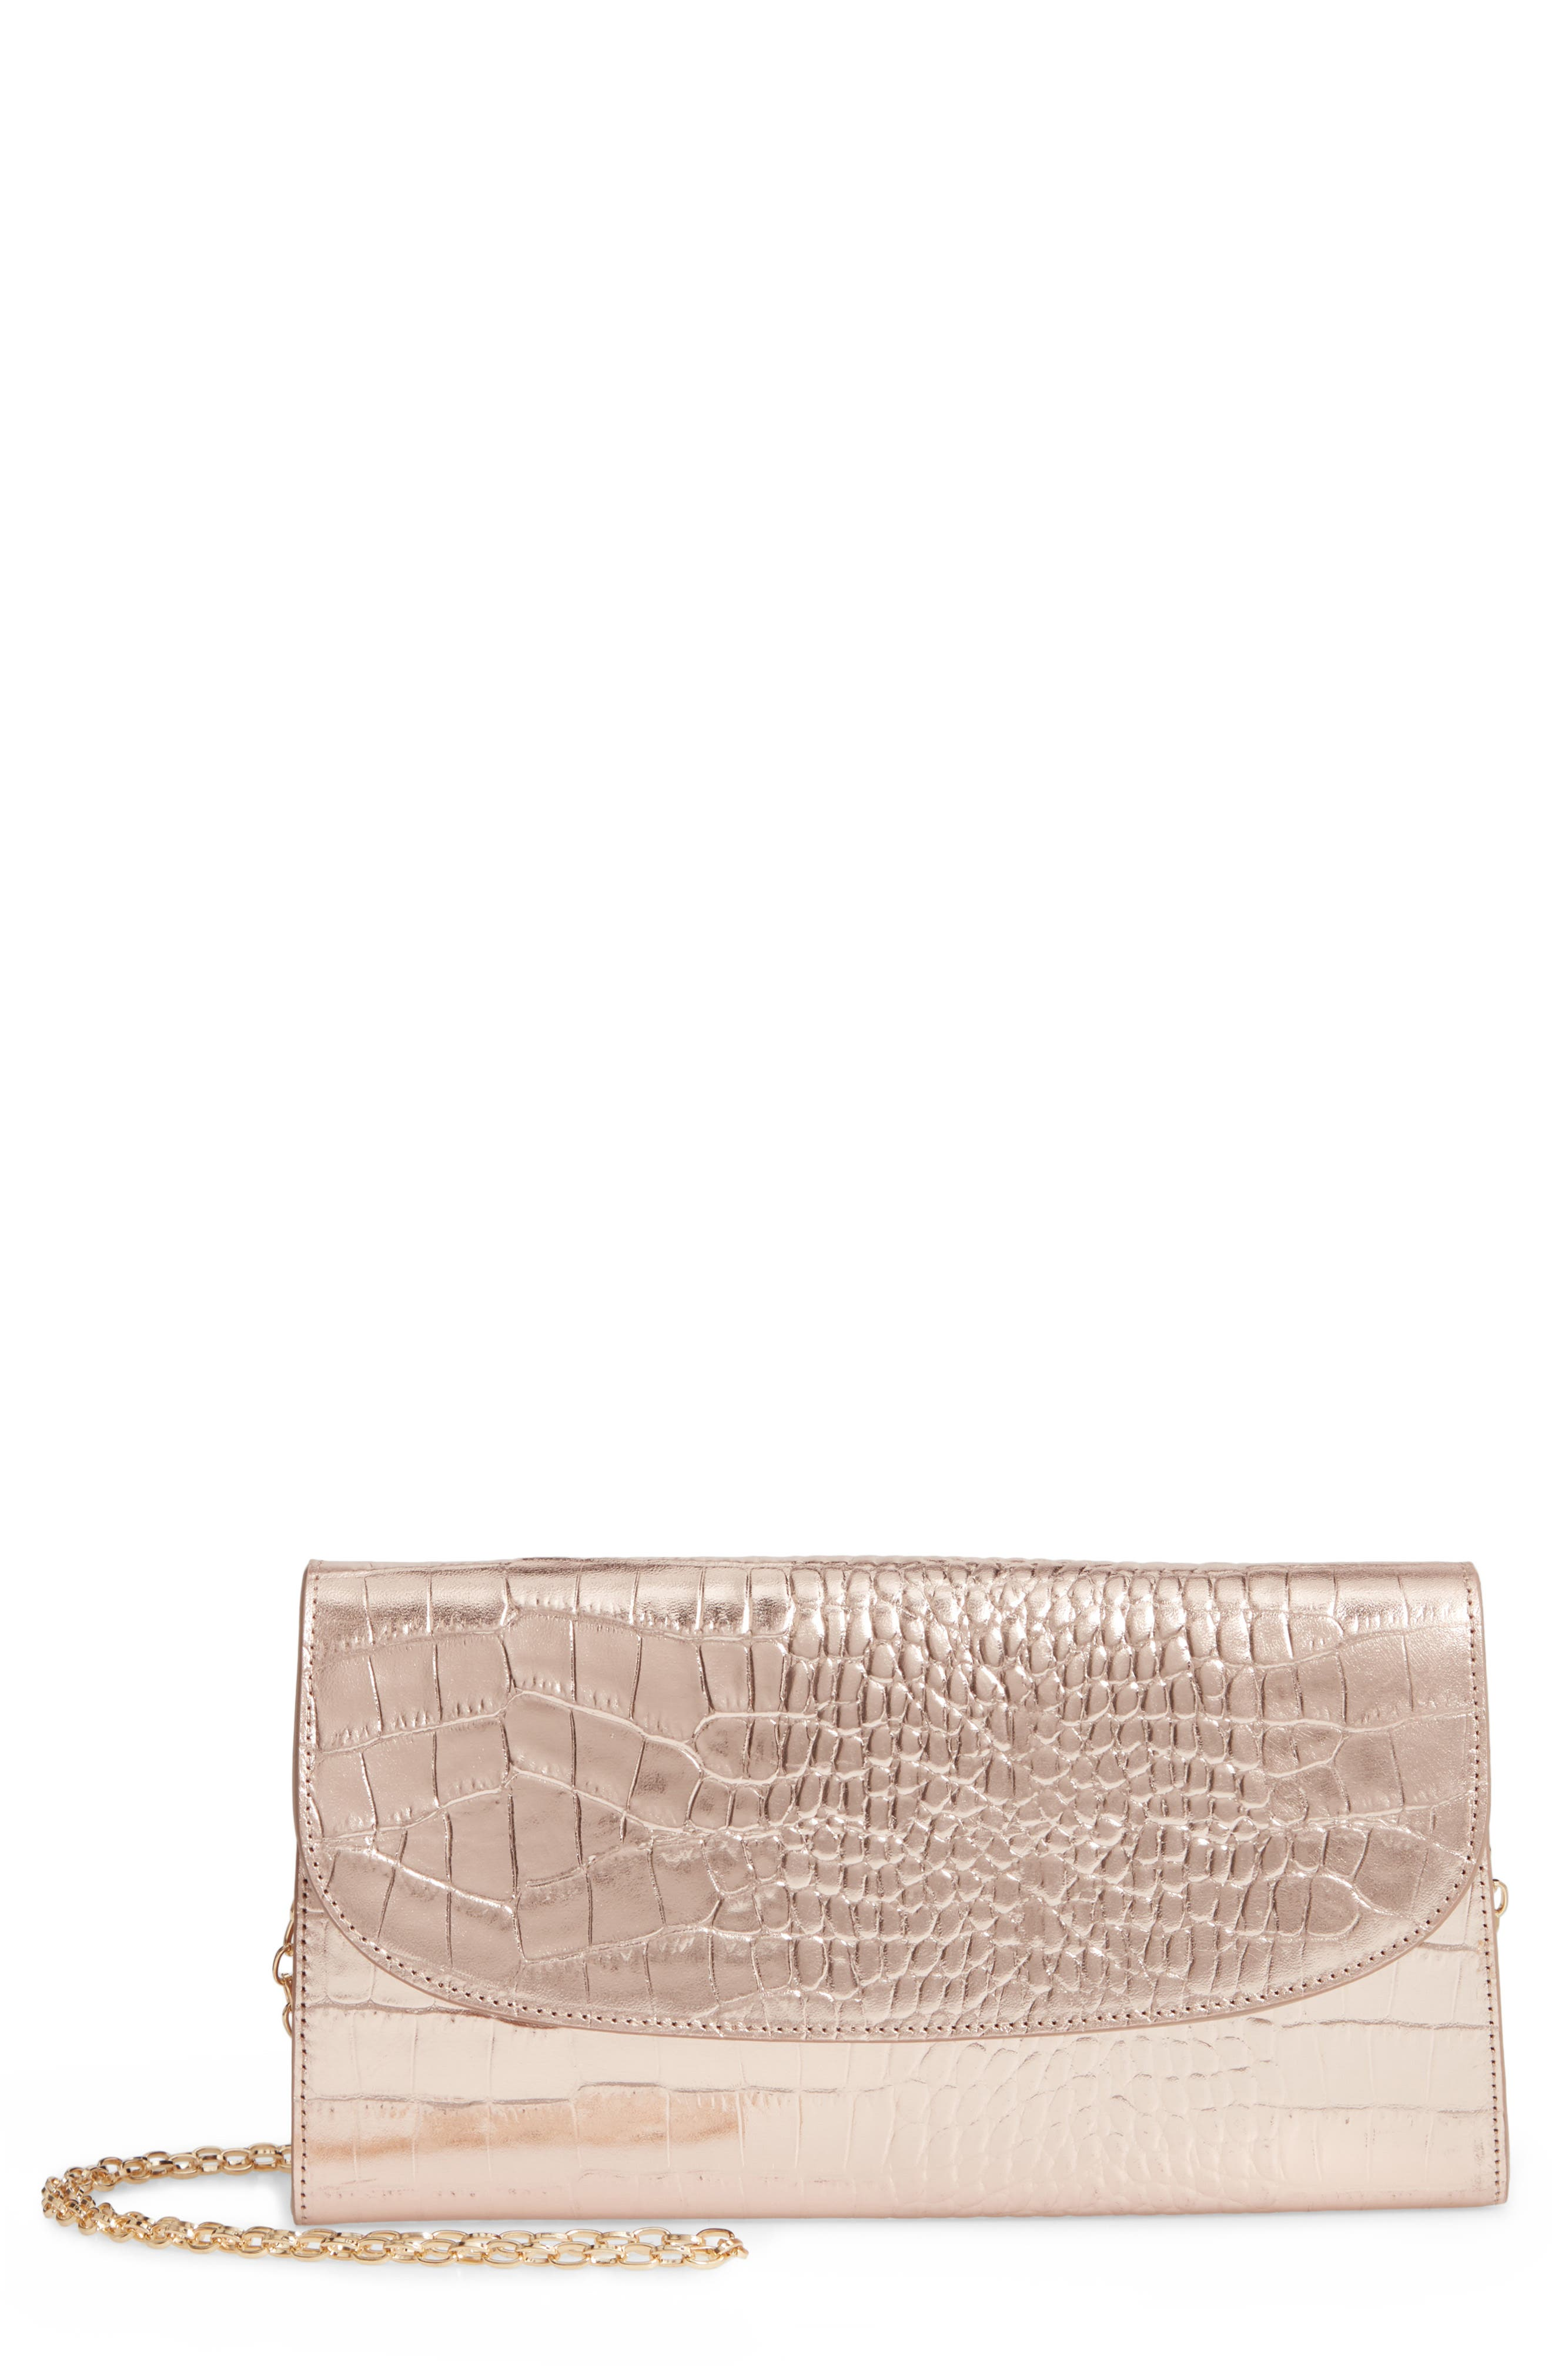 NORDSTROM, Croc Embossed Metallic Leather Clutch, Main thumbnail 1, color, 660